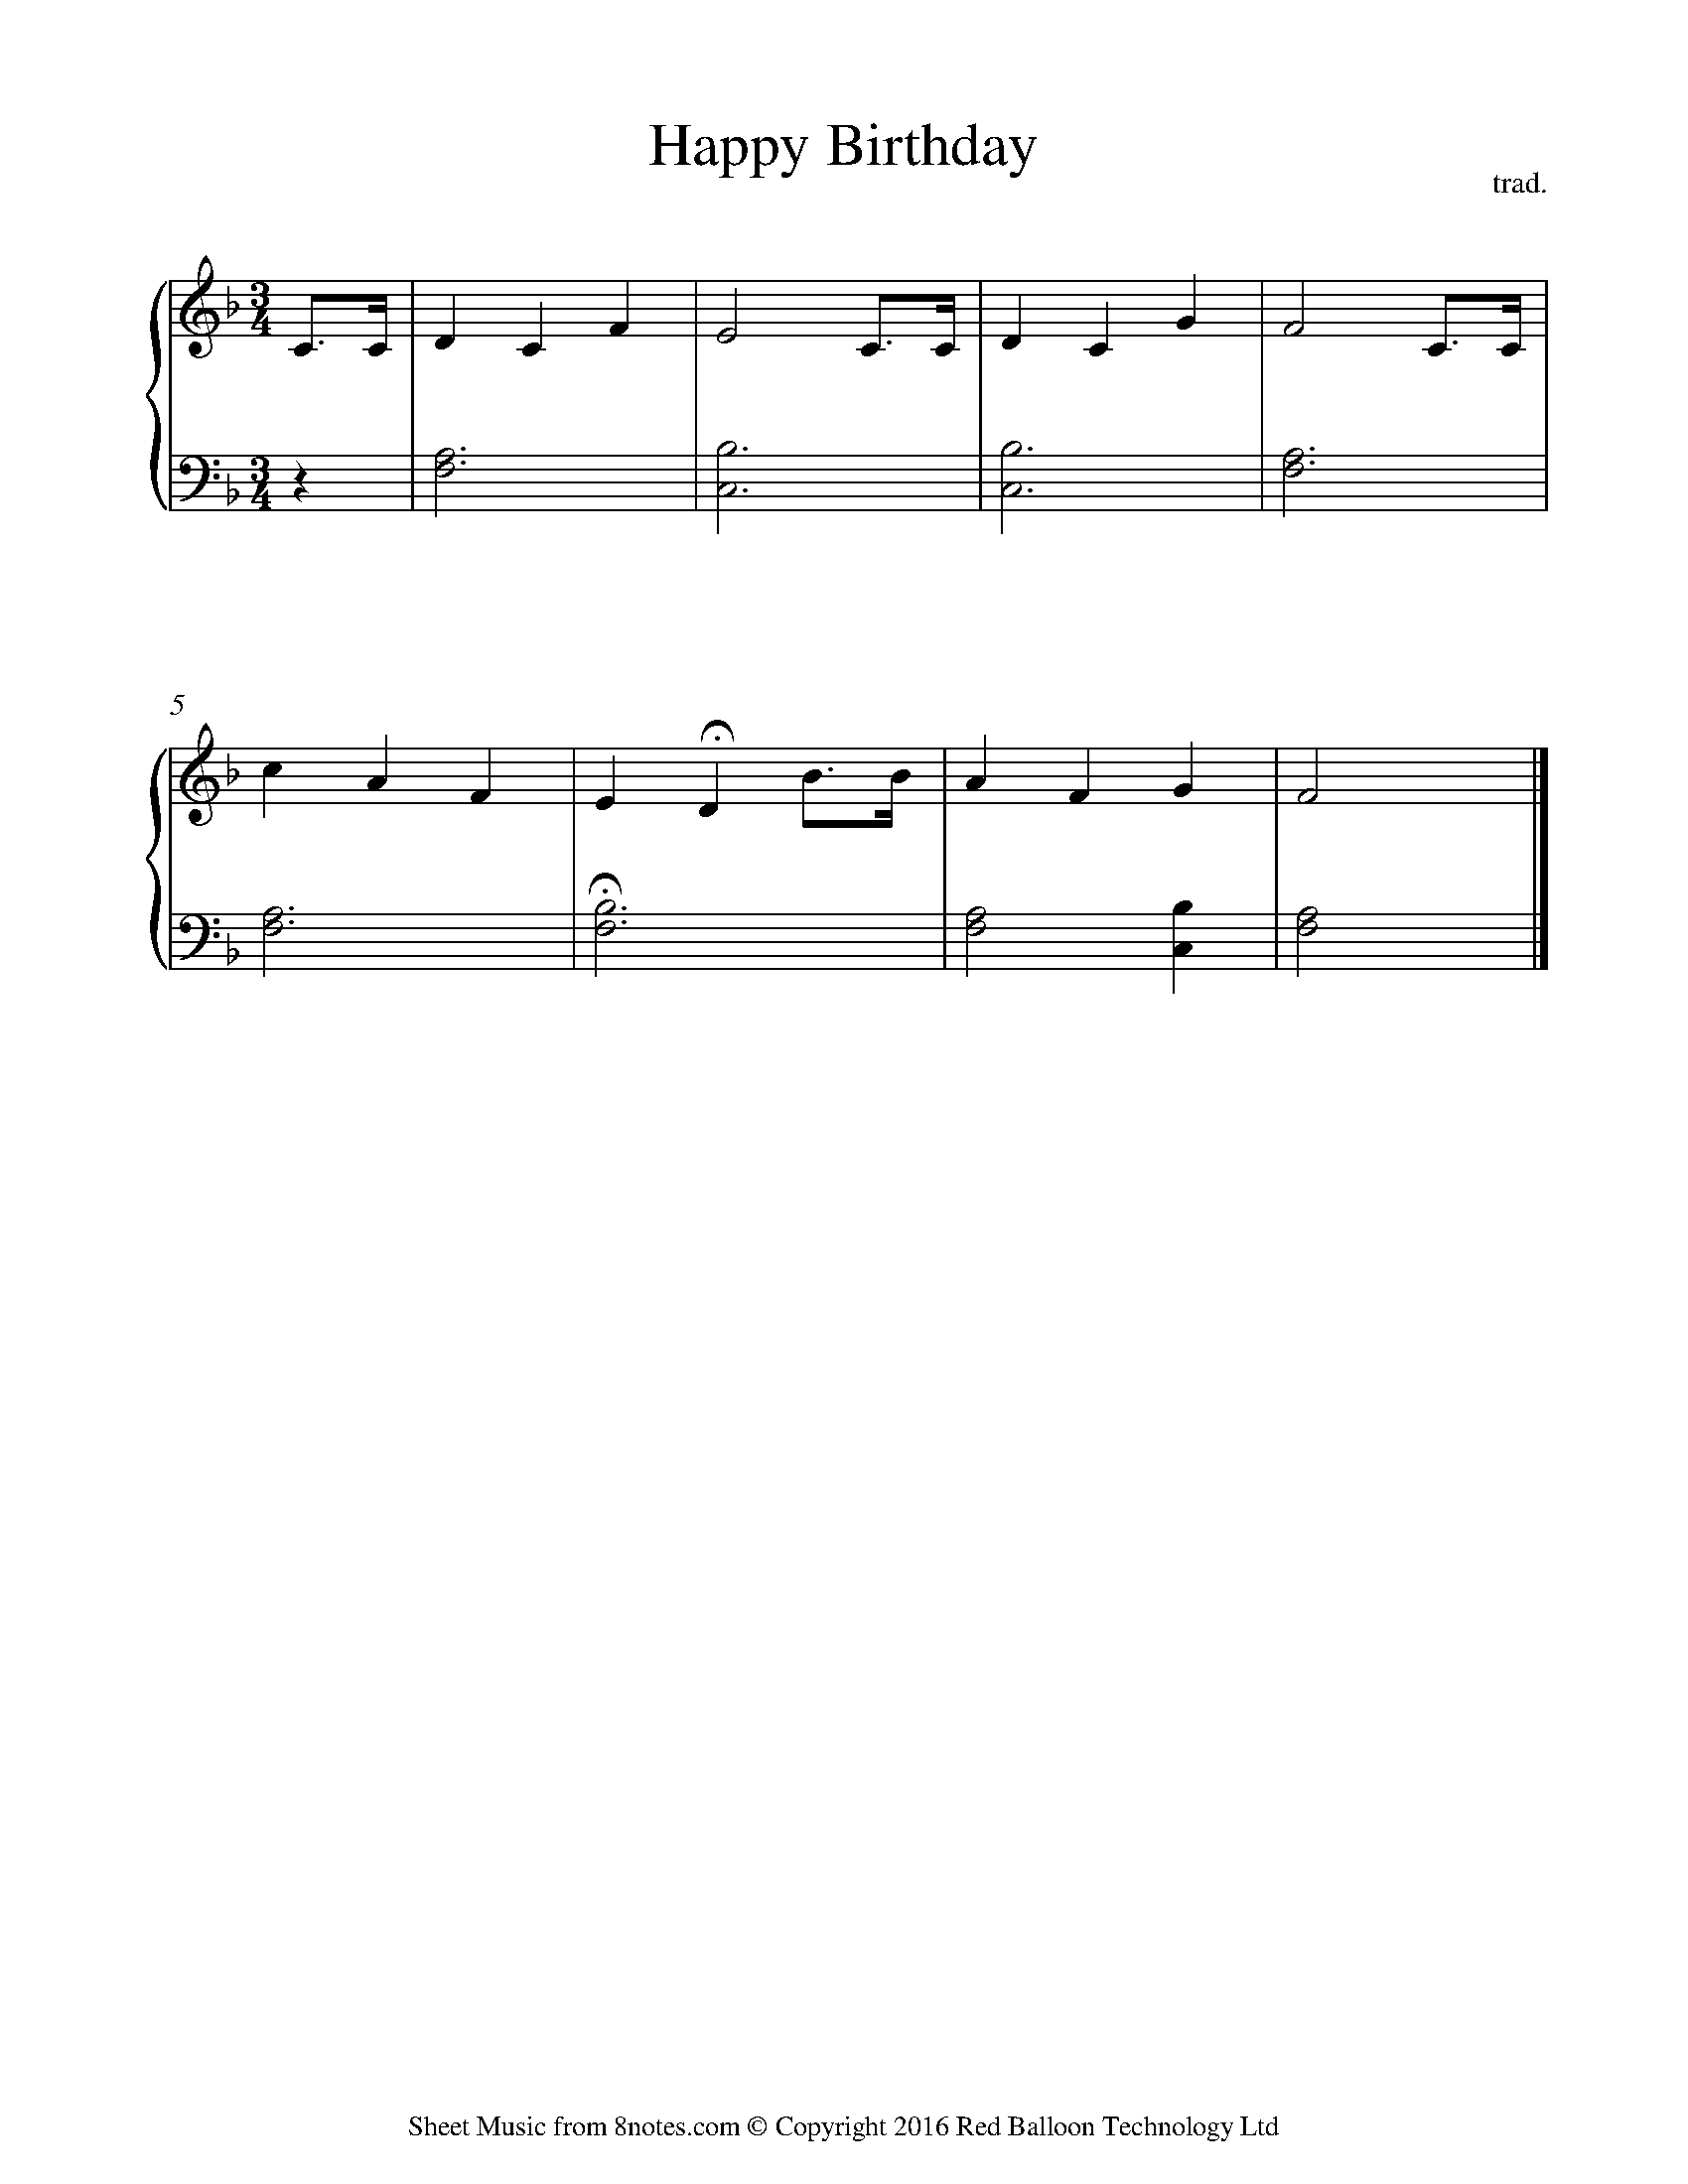 Happy Birthday To You Sheet Music For Piano 8notes Com